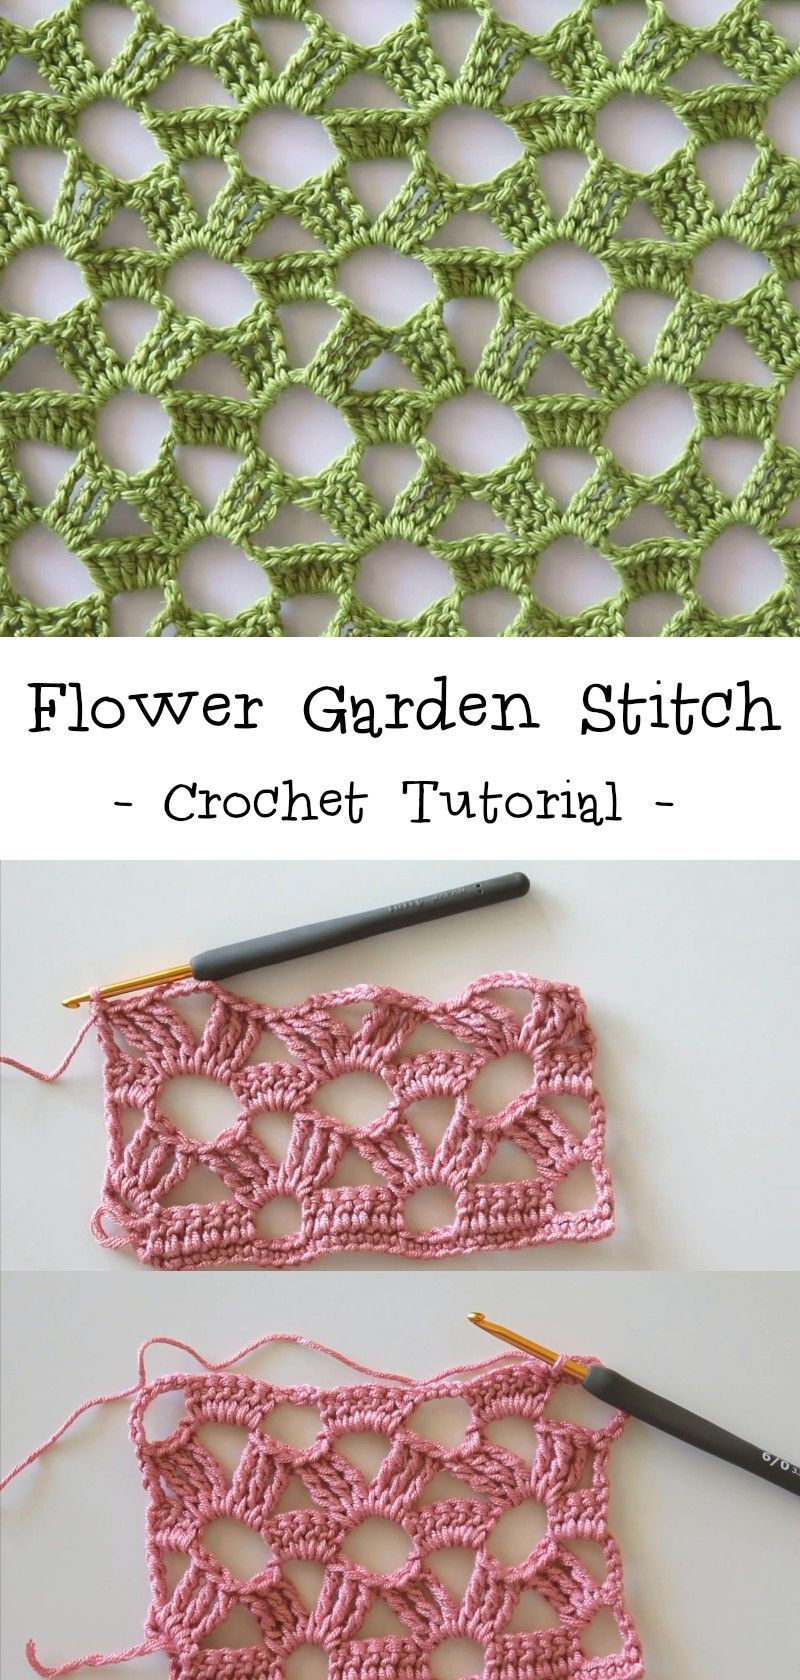 Flower Garden Stitch Crochet Tutorial #crochettutorial